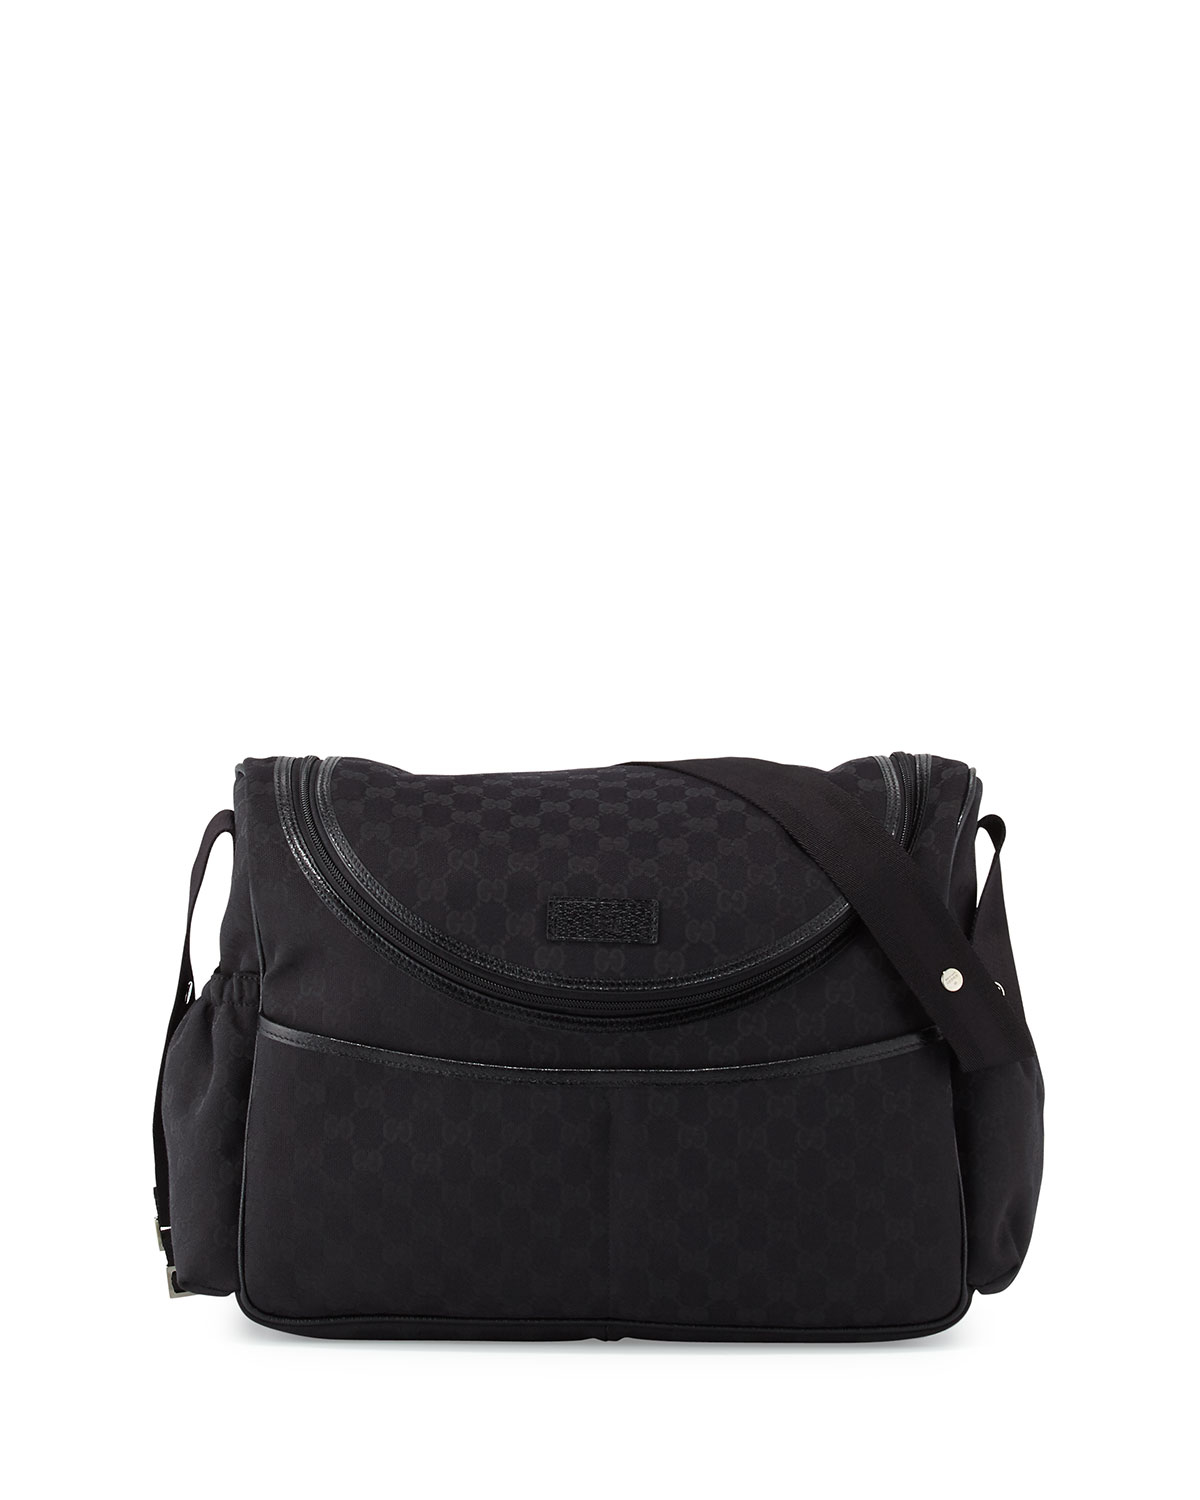 9aa1c8681ecdb6 Gucci Travel Gg Canvas Diaper Bag W/ Changing Pad in Black for Men ...